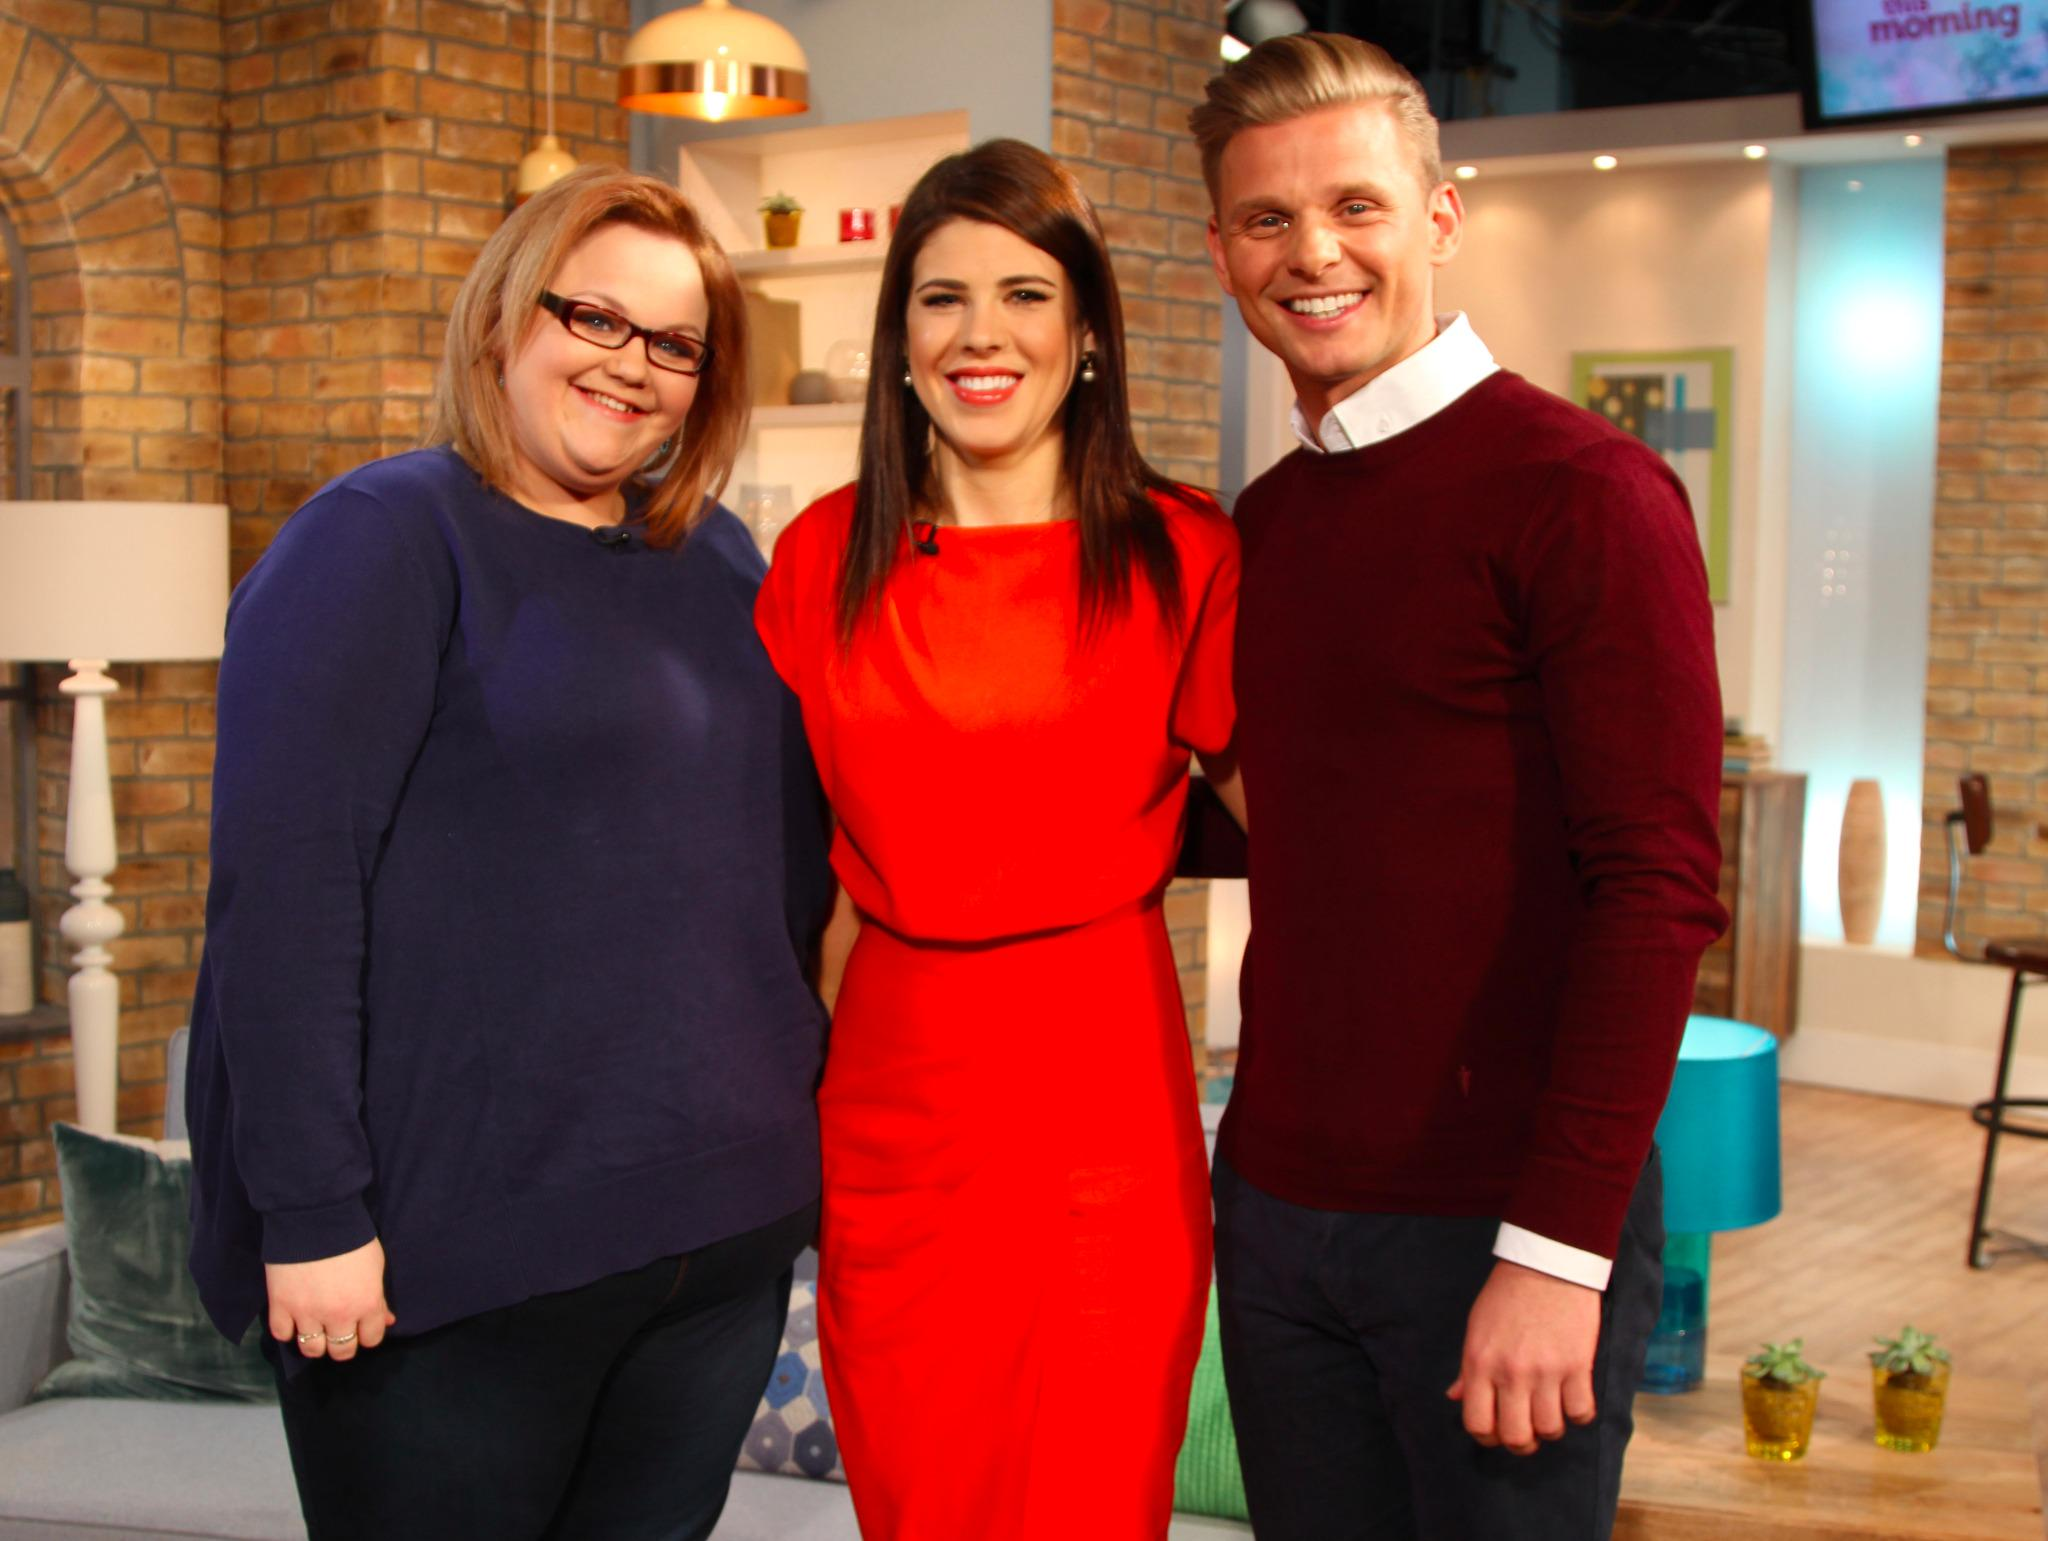 RT @itvthismorning: ...in the form of life coach @jeffbrazier - good luck Christina! http://t.co/Ua9TLIHFDQ http://t.co/qFkyFiAShB